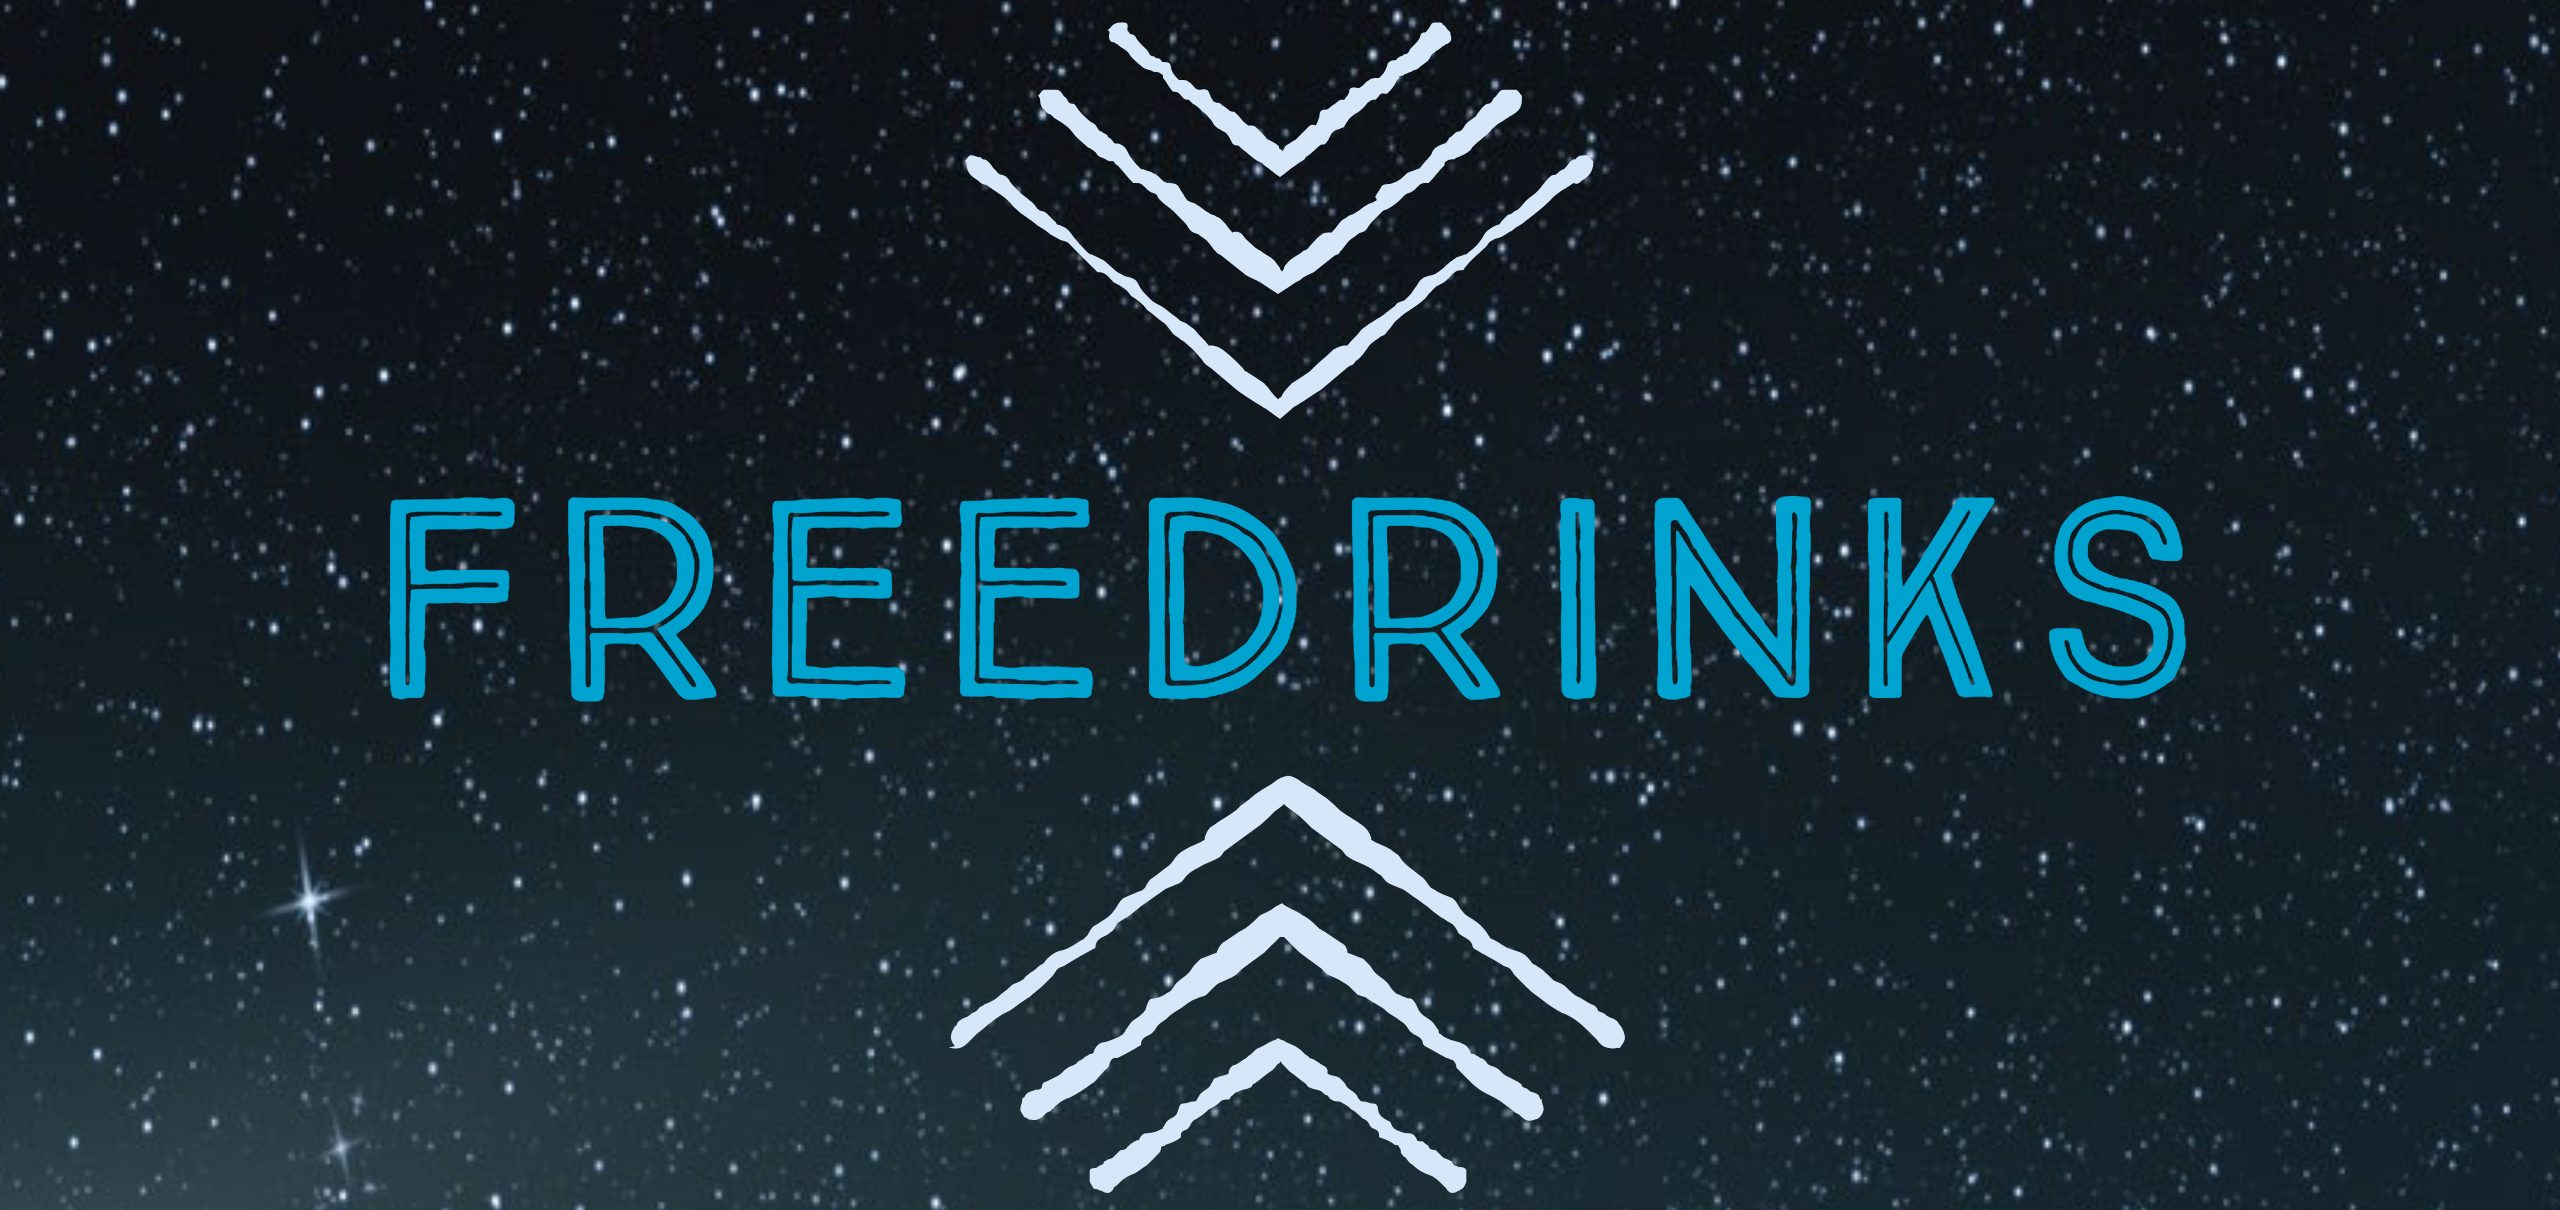 freedrinks